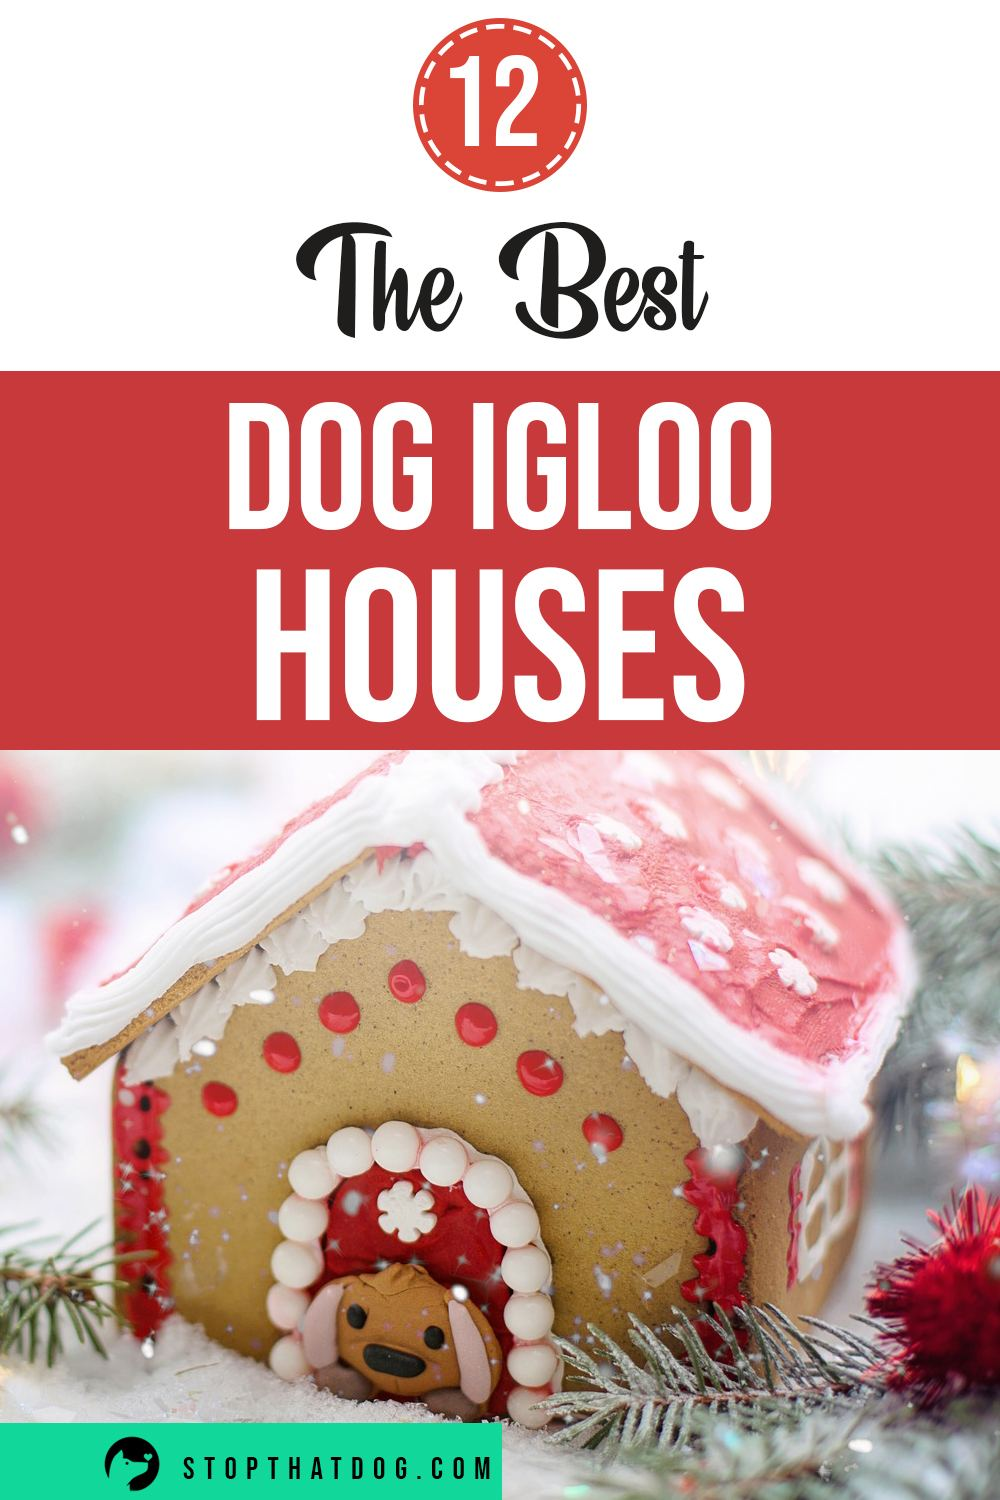 Igloo dog houses offer a lot of comfort and security for any dog. This guide reveals the best dog igloo houses on the market.